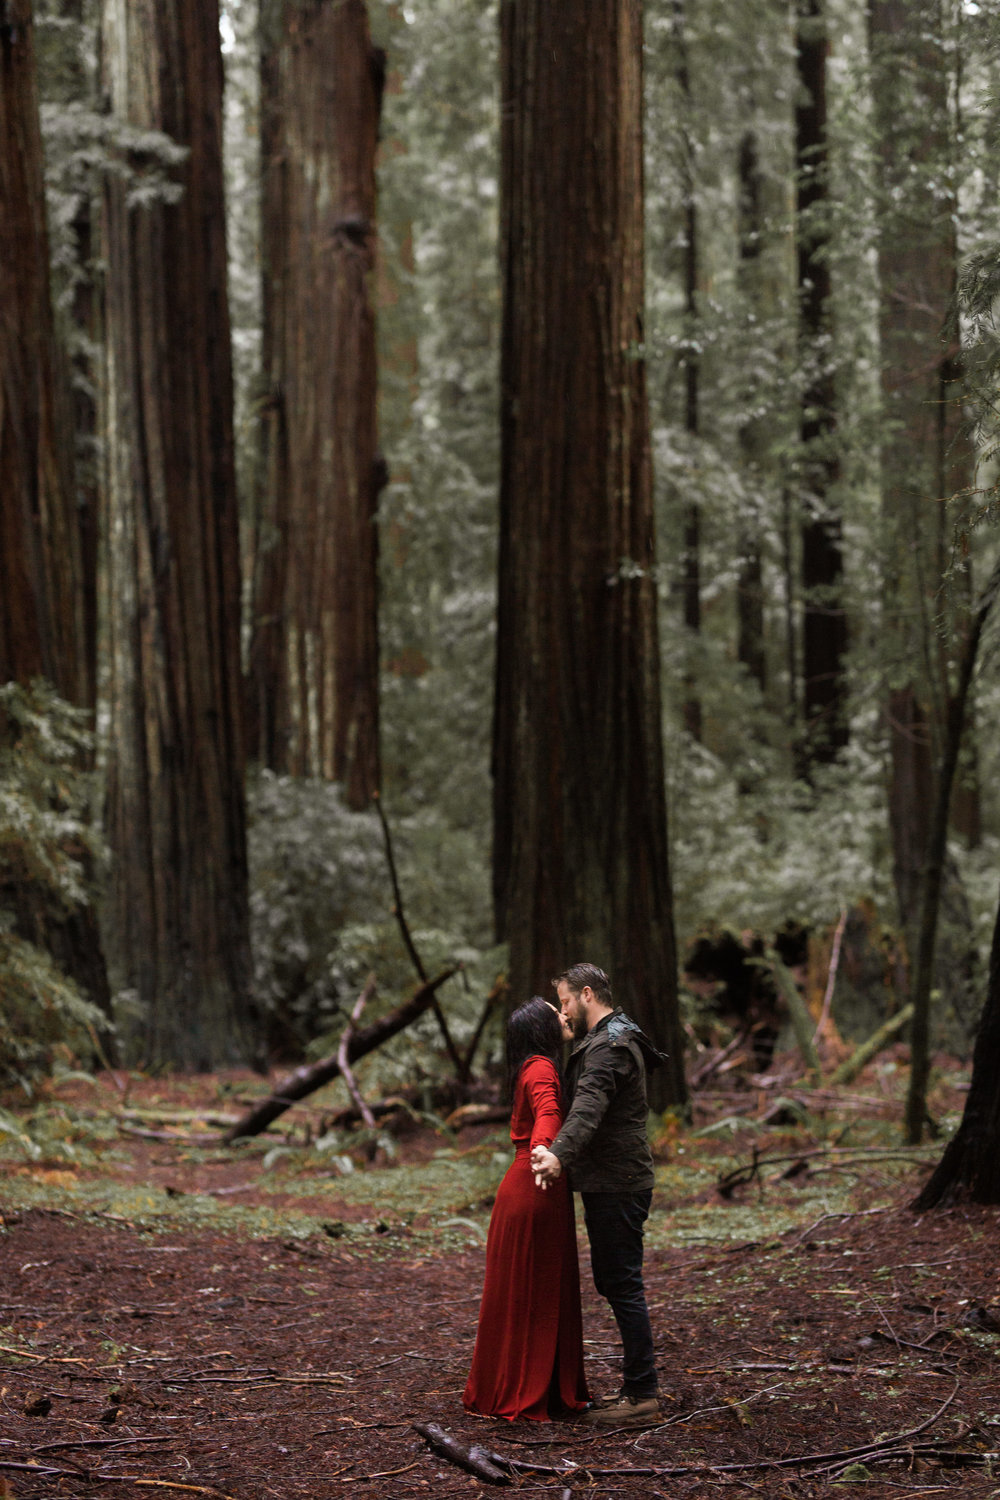 nicole-daacke-photography-redwoods-national-park-forest-rainy-foggy-adventure-engagement-session-humboldt-county-old-growth-redwood-tree-elopement-intimate-wedding-photographer-38.jpg